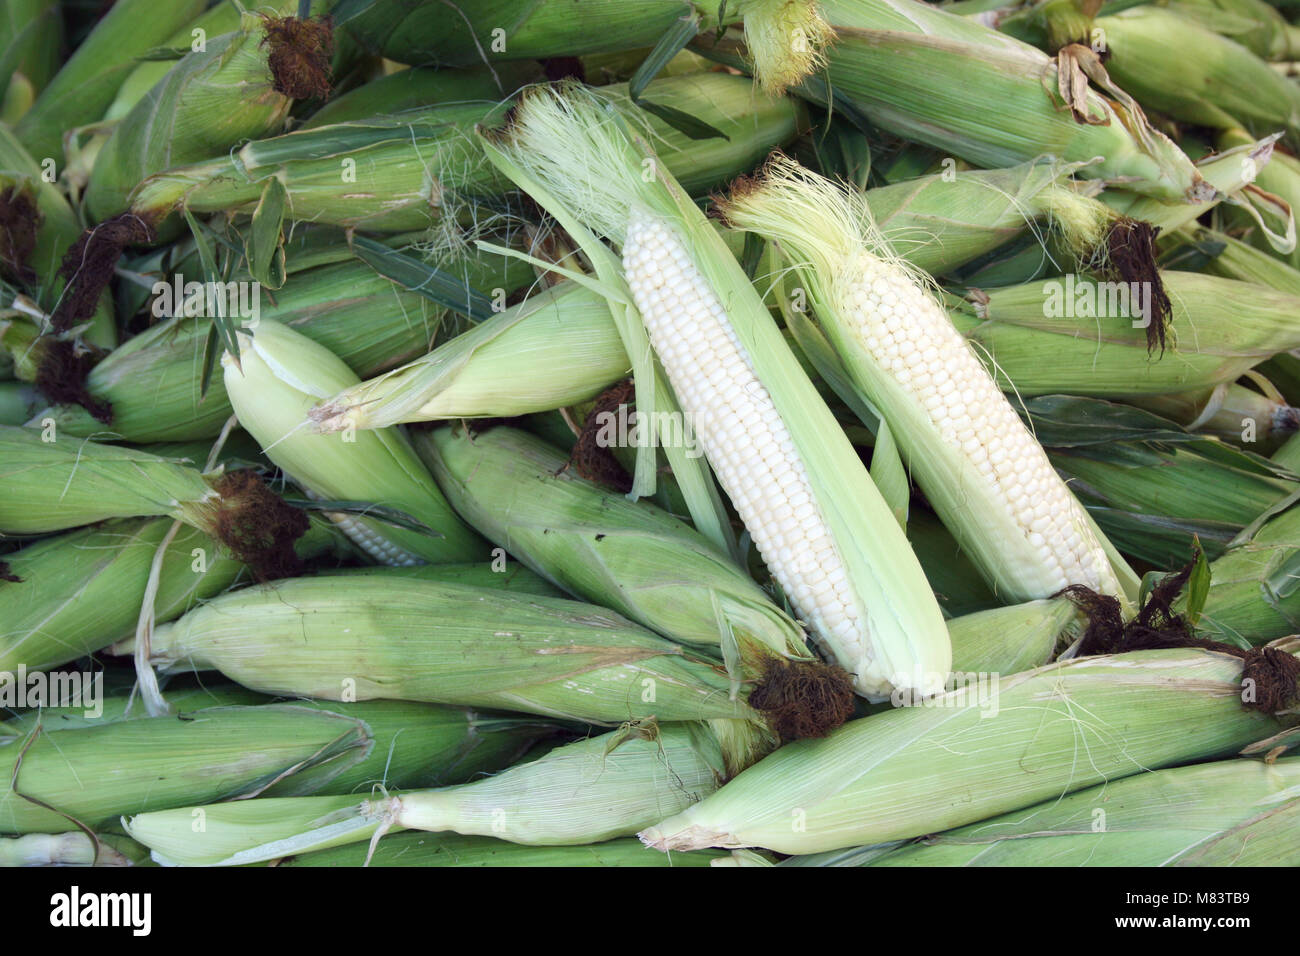 ears of Corn on the cob at the market - Stock Image